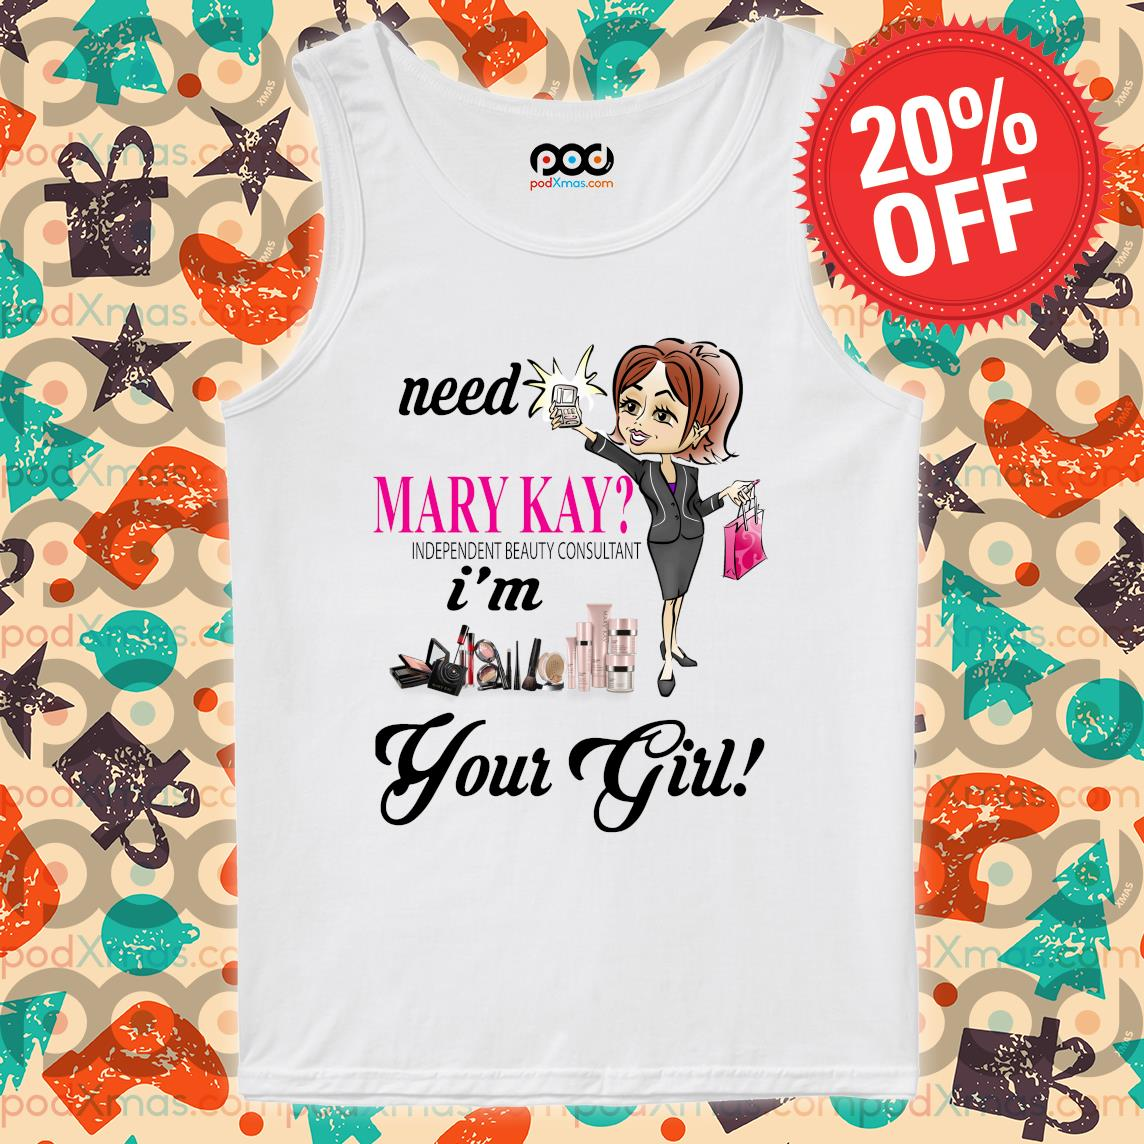 Need Mary Kay independent beauty consultant i'm your girl s Tank top PODxmas trang